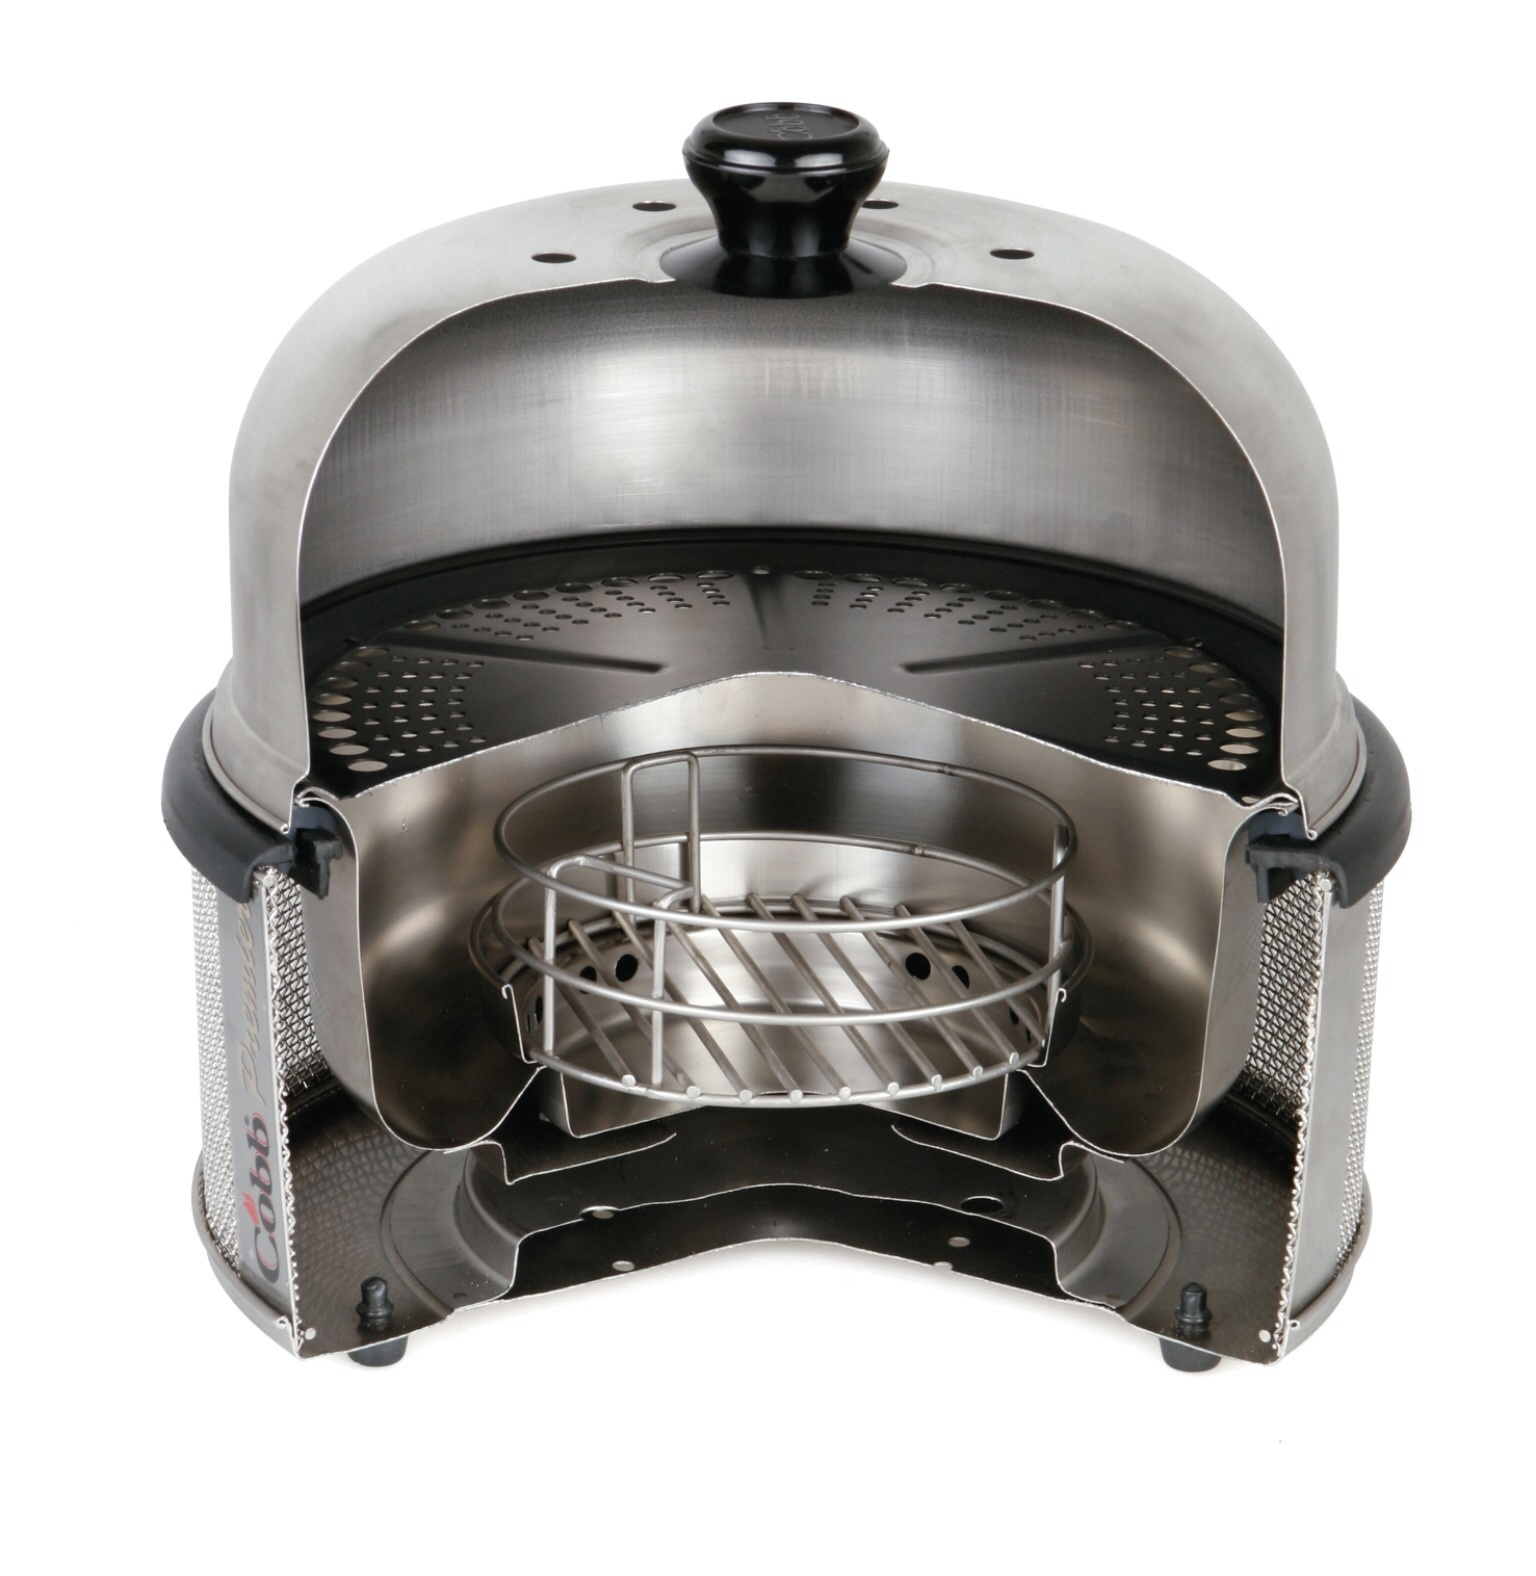 tailgating grills, grill tools and outdoor cooking: the cobb grill